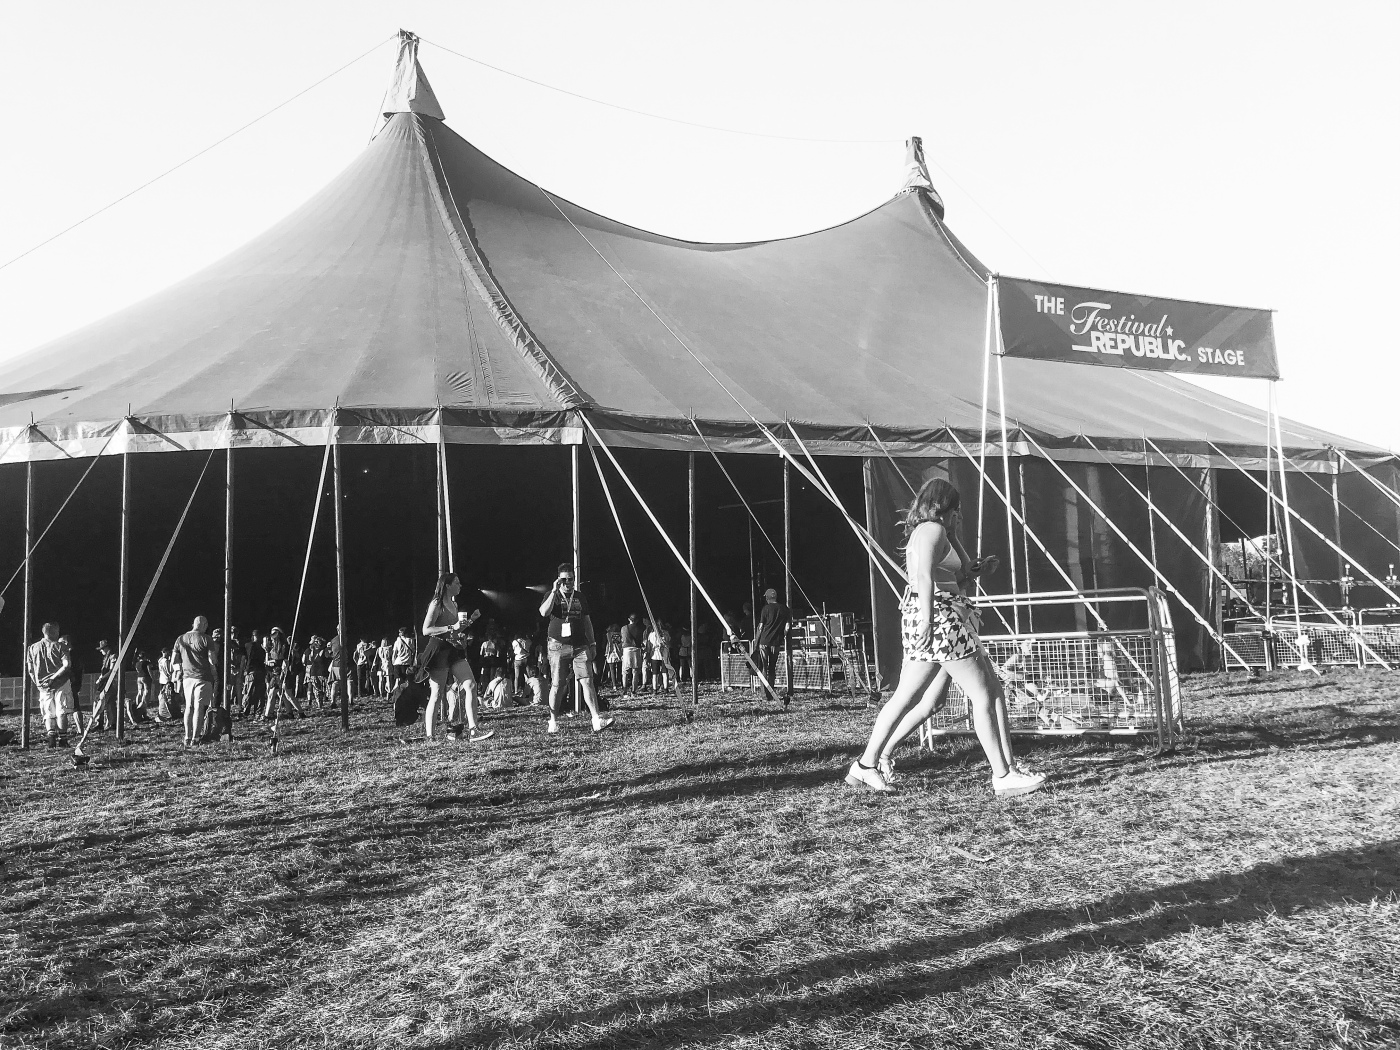 Festival Republic Stage at Reading Festival 2019